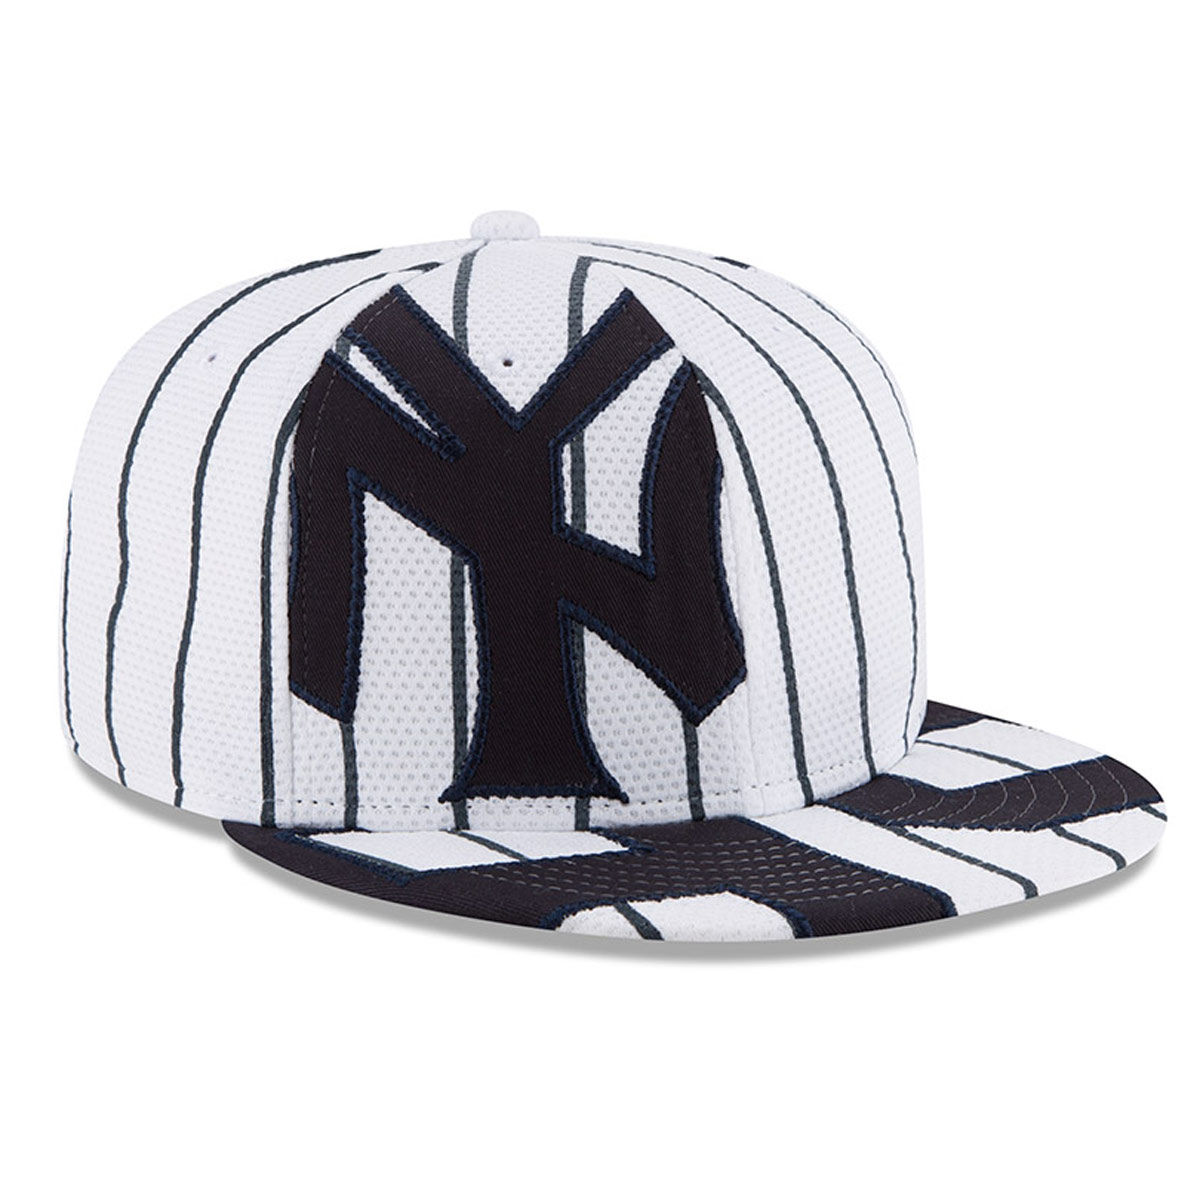 New York Yankees Adult Aaron Judge Snapback Hat